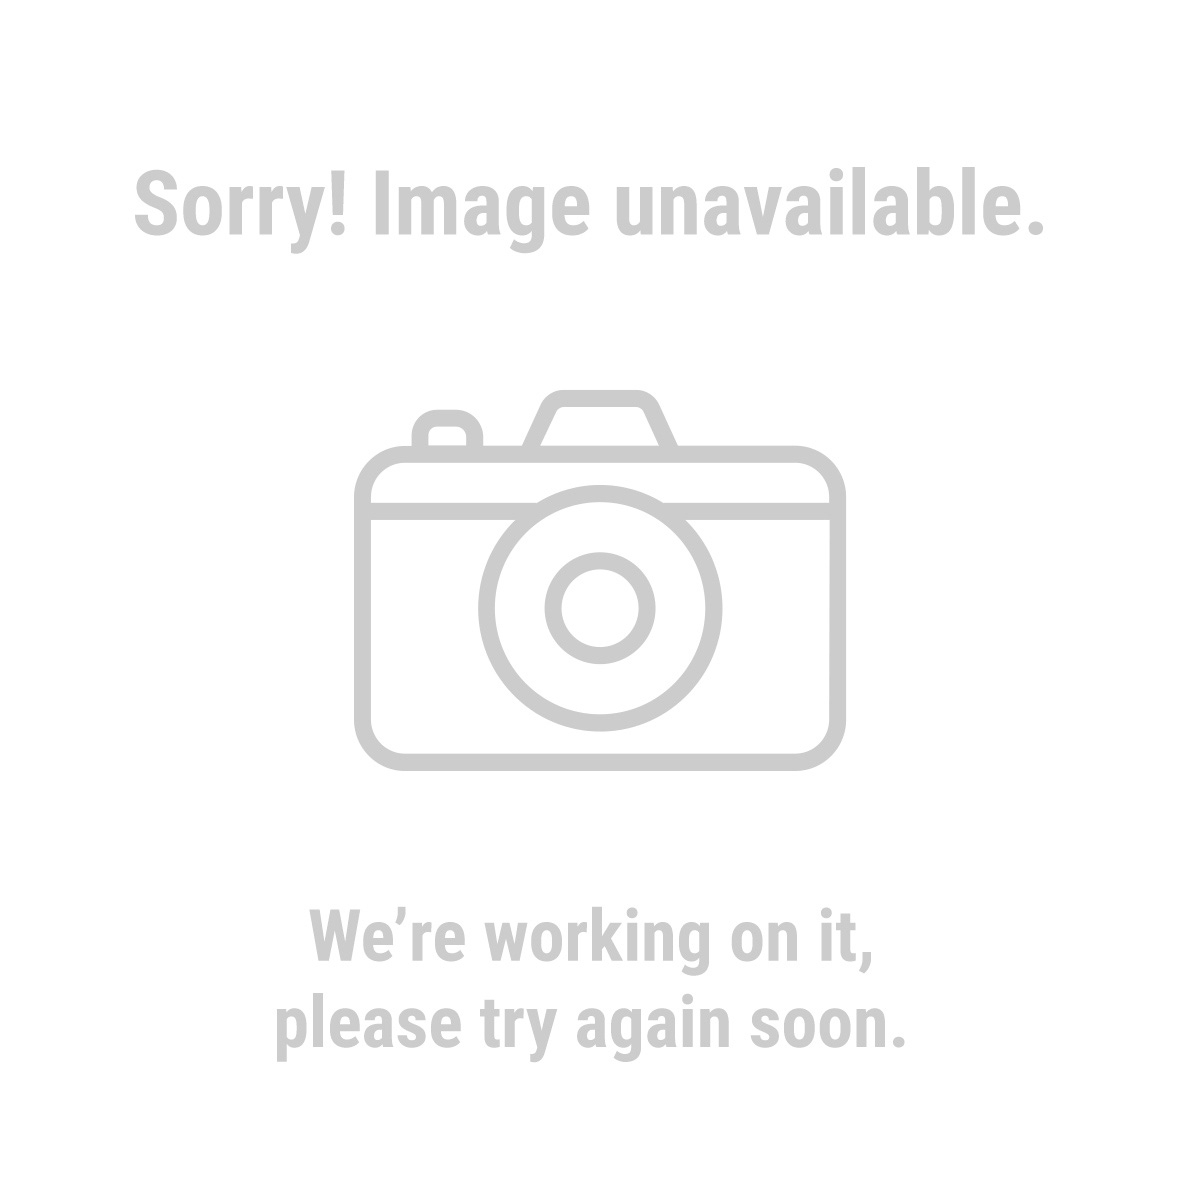 Haul-Master® 69898 Heavy Duty Trailer Dolly